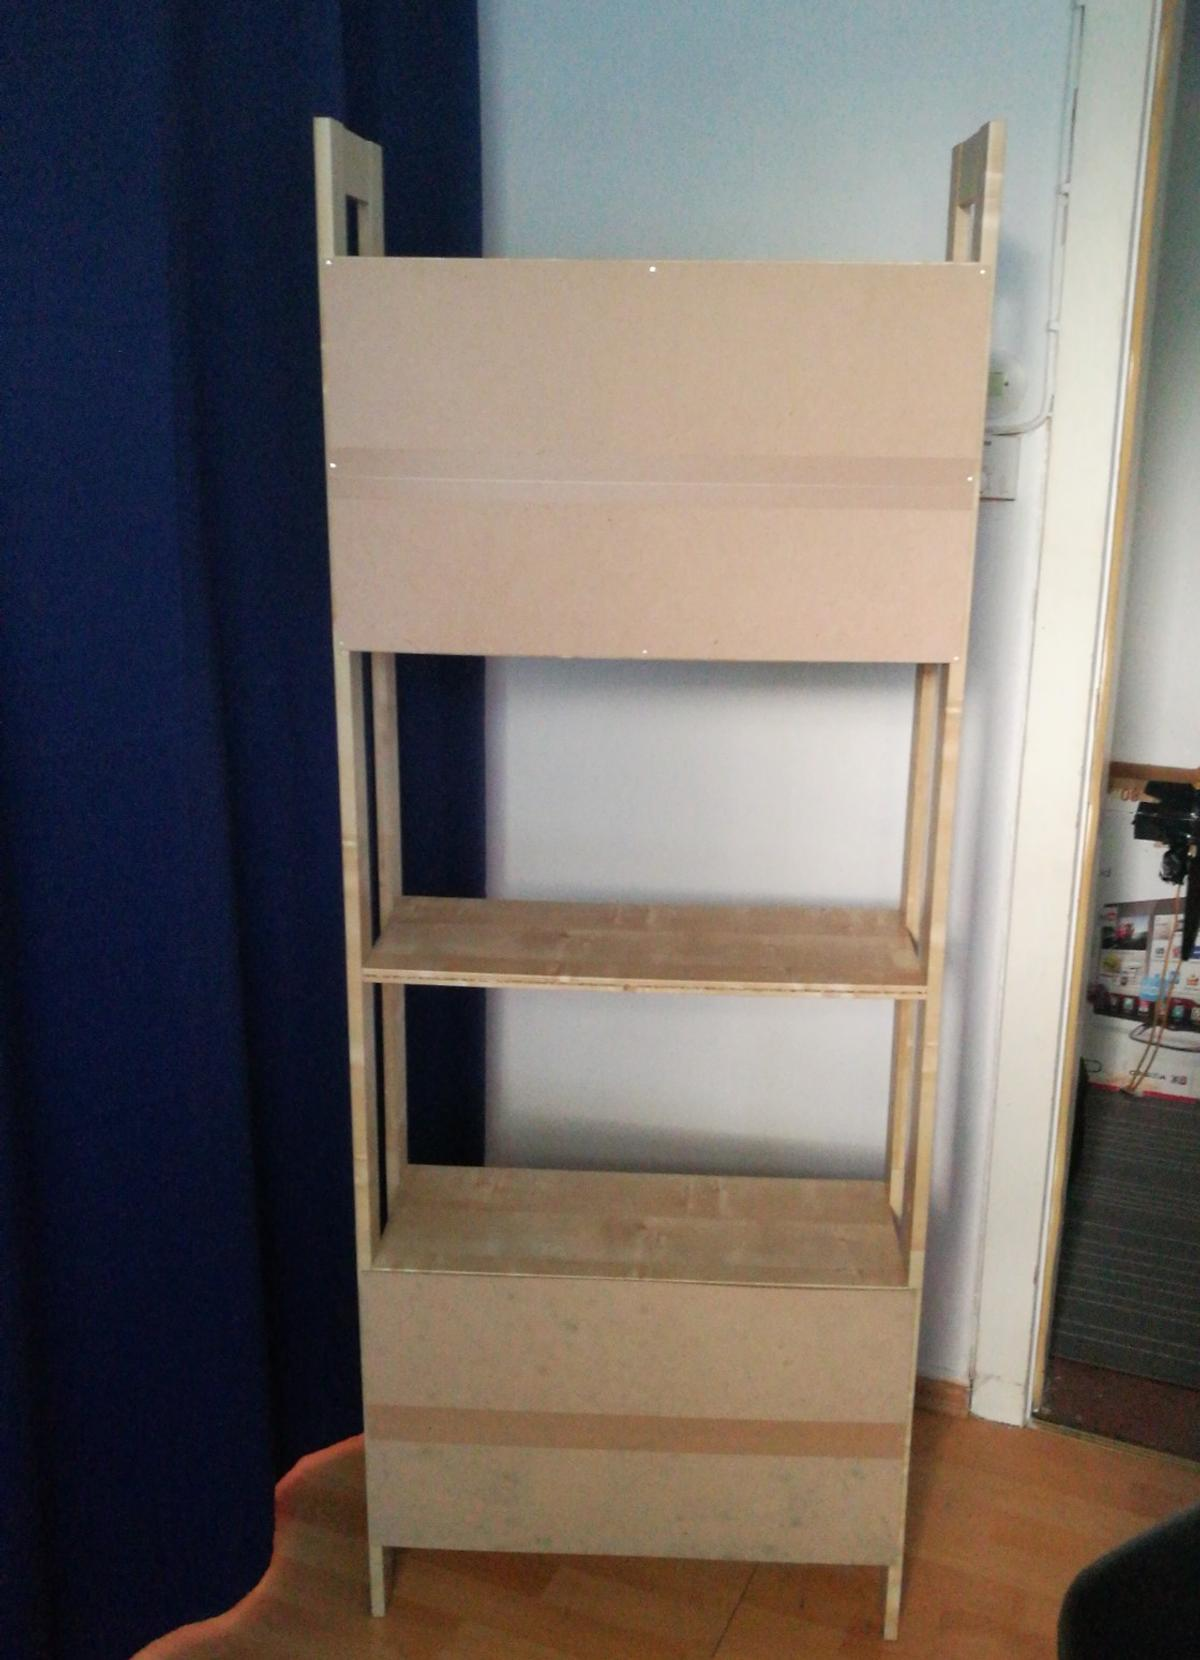 Laiva Regal Ikea Laiva Regal 2xstück In 21073 Harburg For Free For Sale Shpock